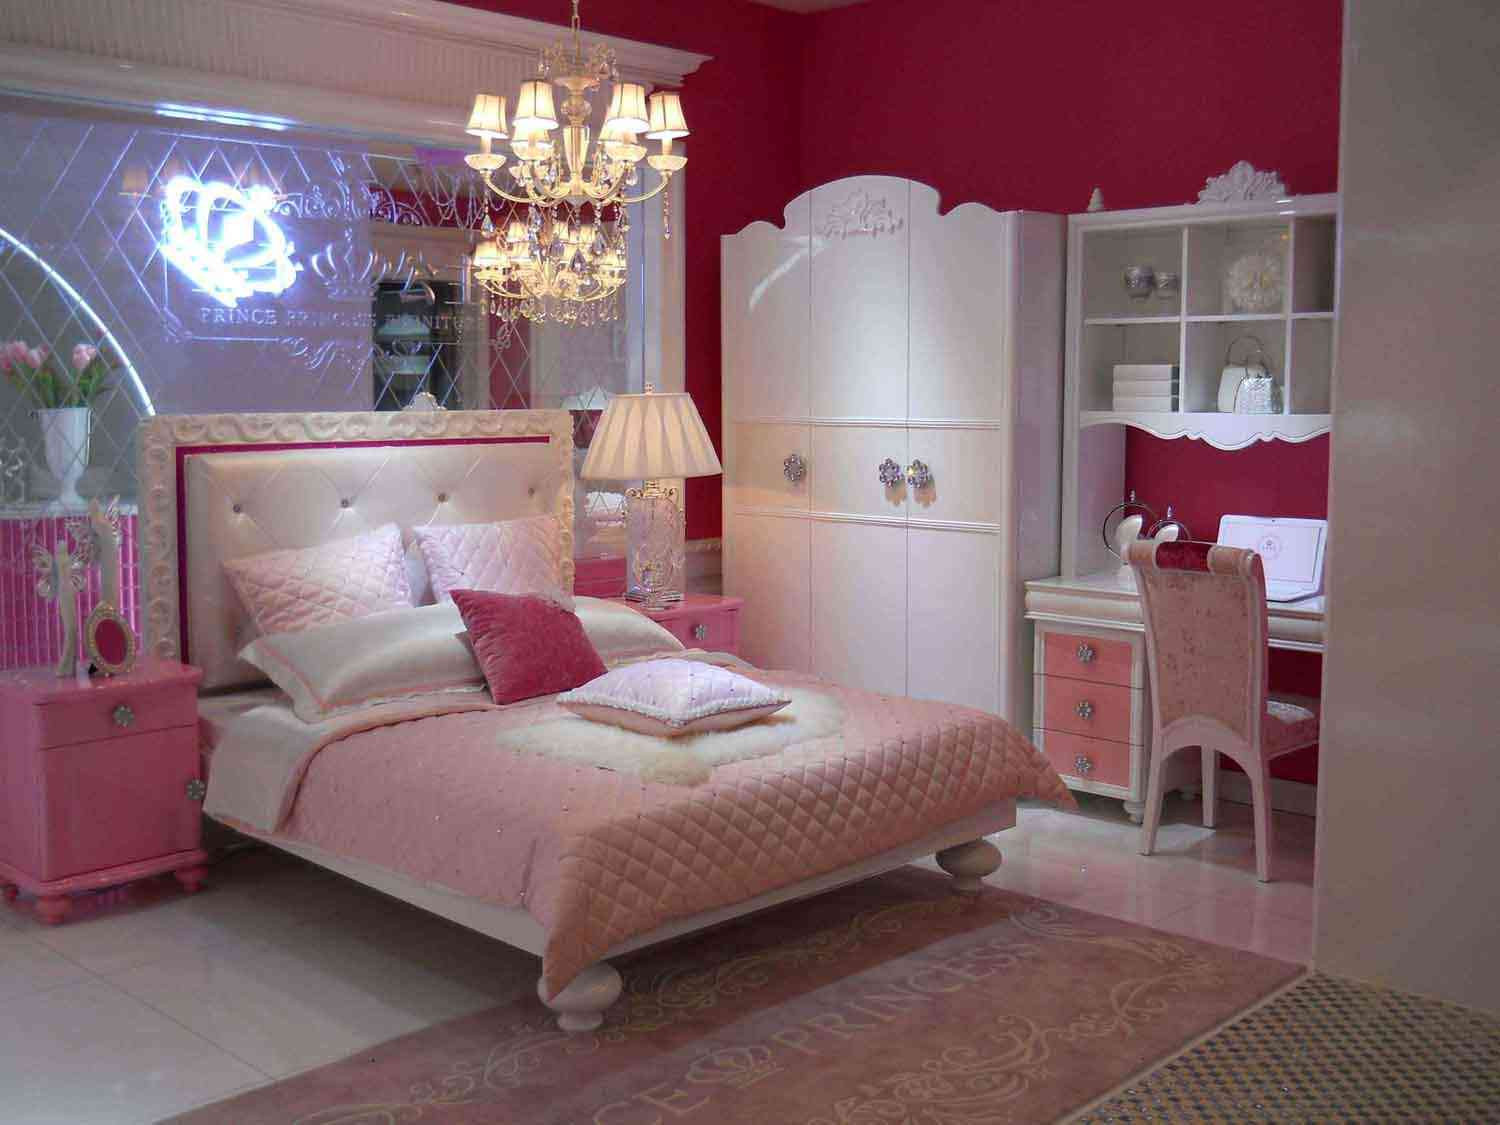 Best ideas about Kids Bedroom Furniture Sets . Save or Pin Kids Bedroom Furniture Sets For Boys Now.